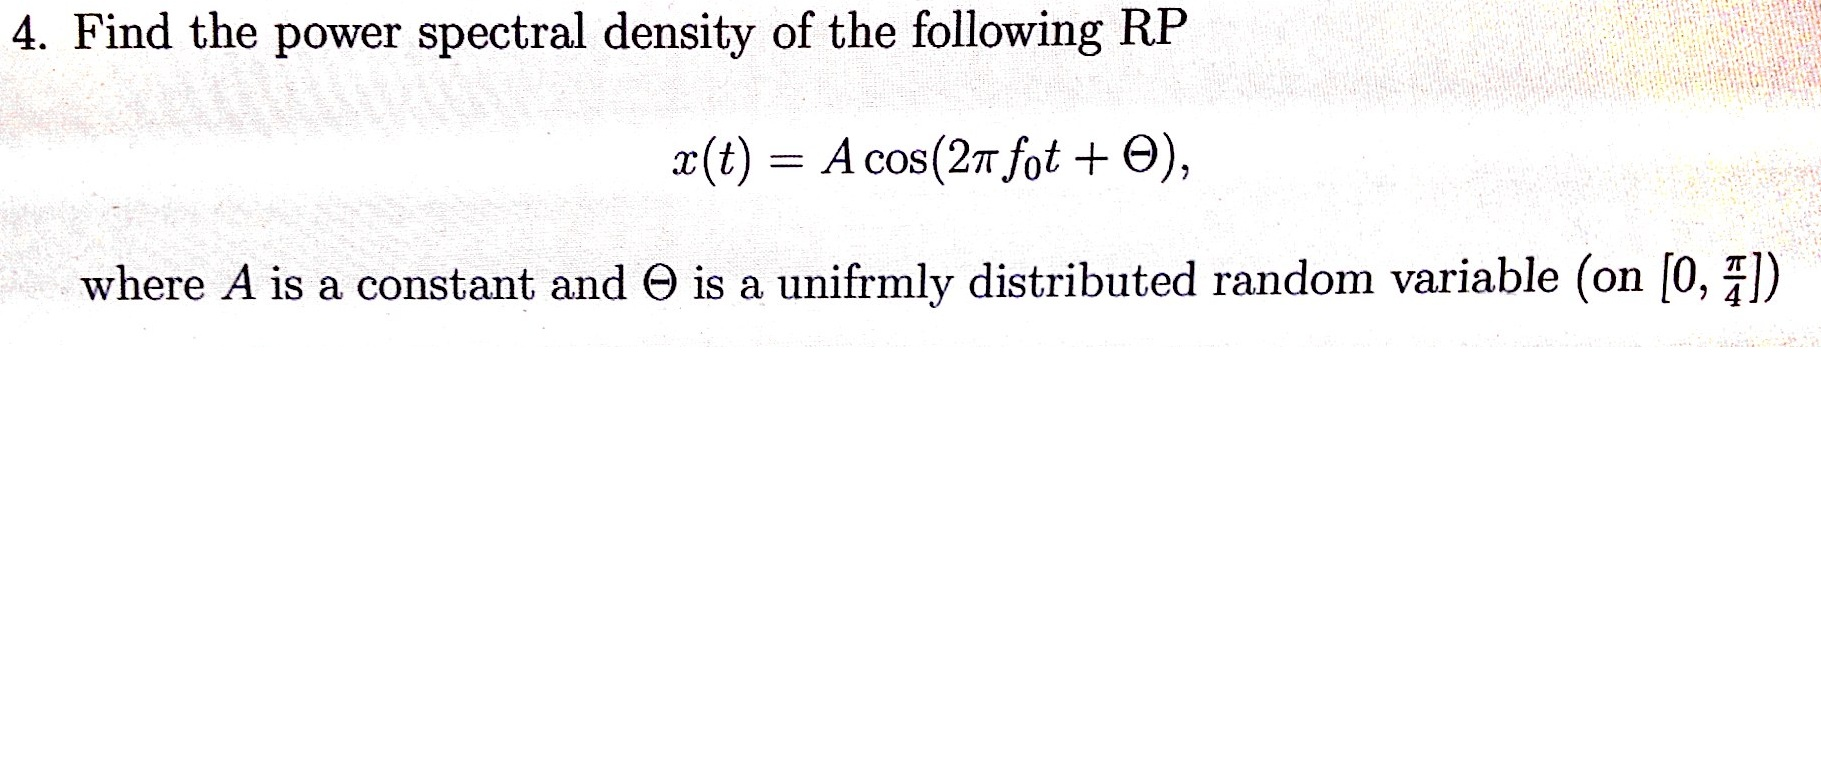 Find the power spectral density of the following R